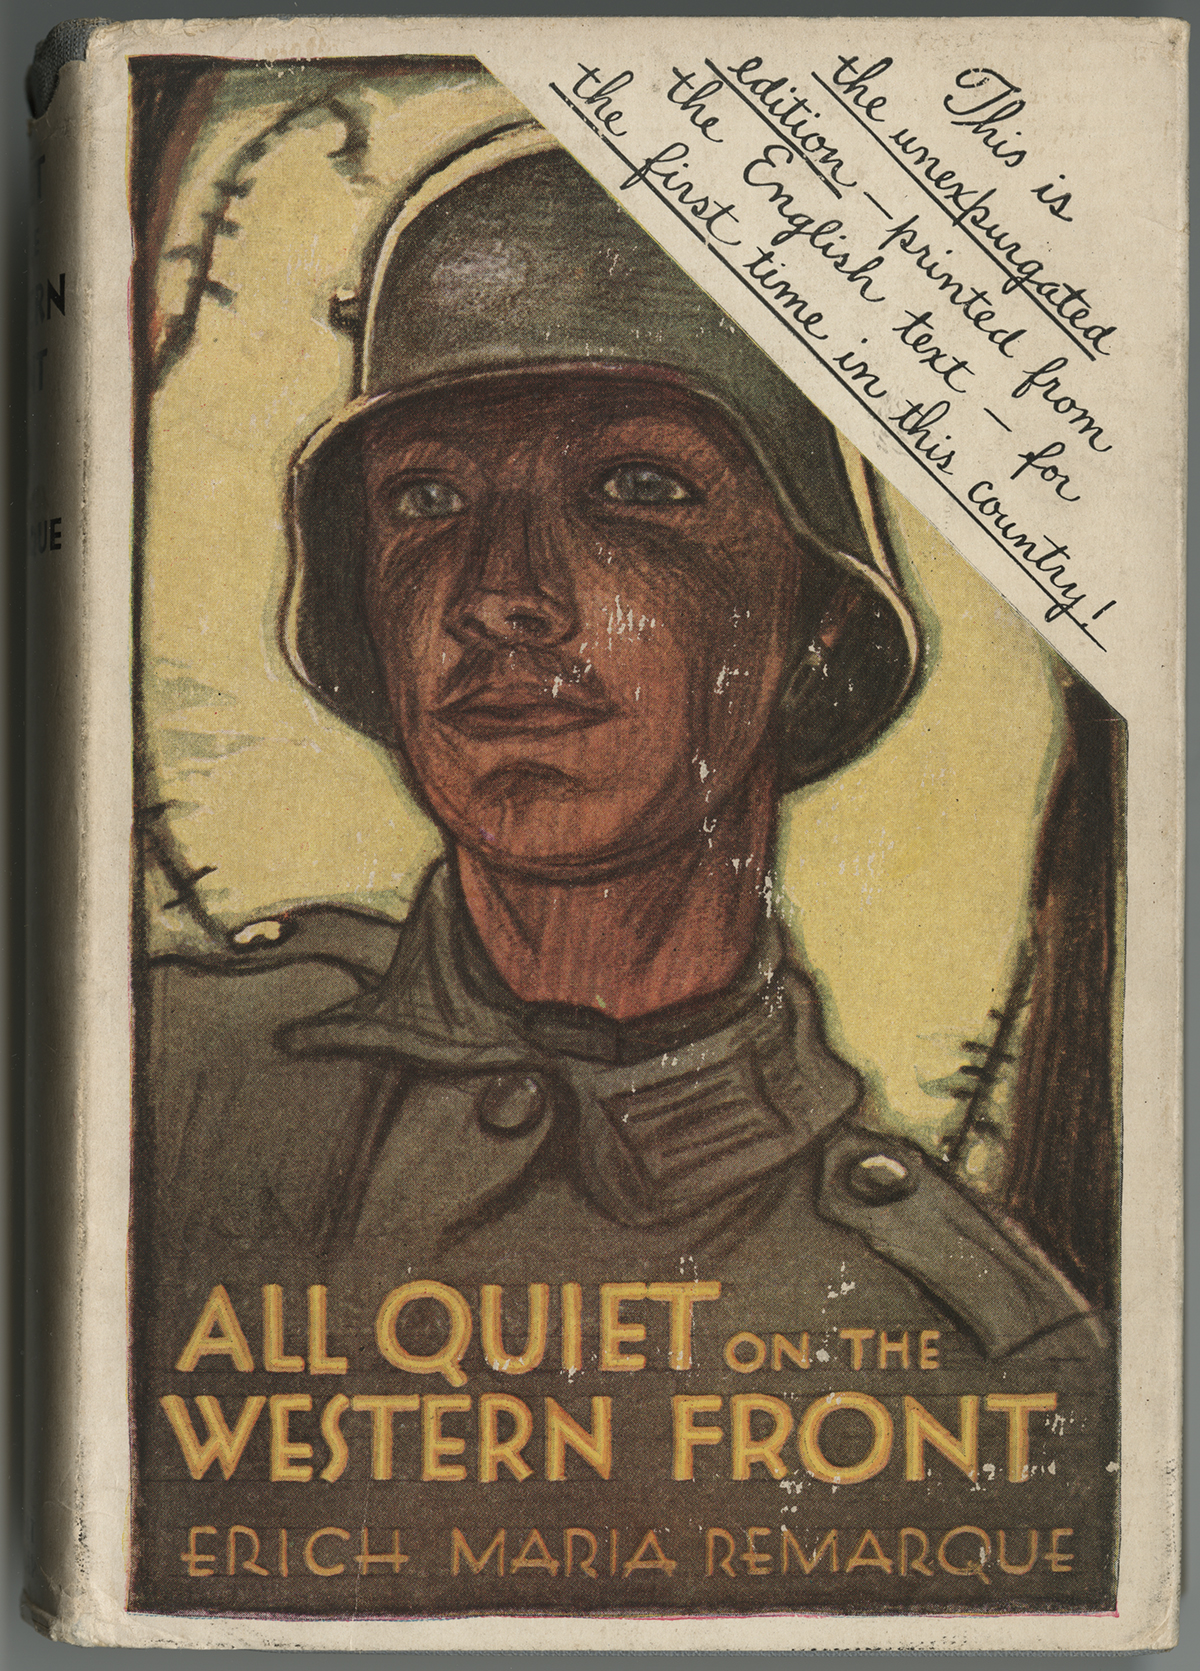 a decline in morality in all quiet on the western front by erich maria remarque Erich maria remarque's all quiet on the western front it was a quiet day in the trenches all quiet on the western front by erich maria remarque.